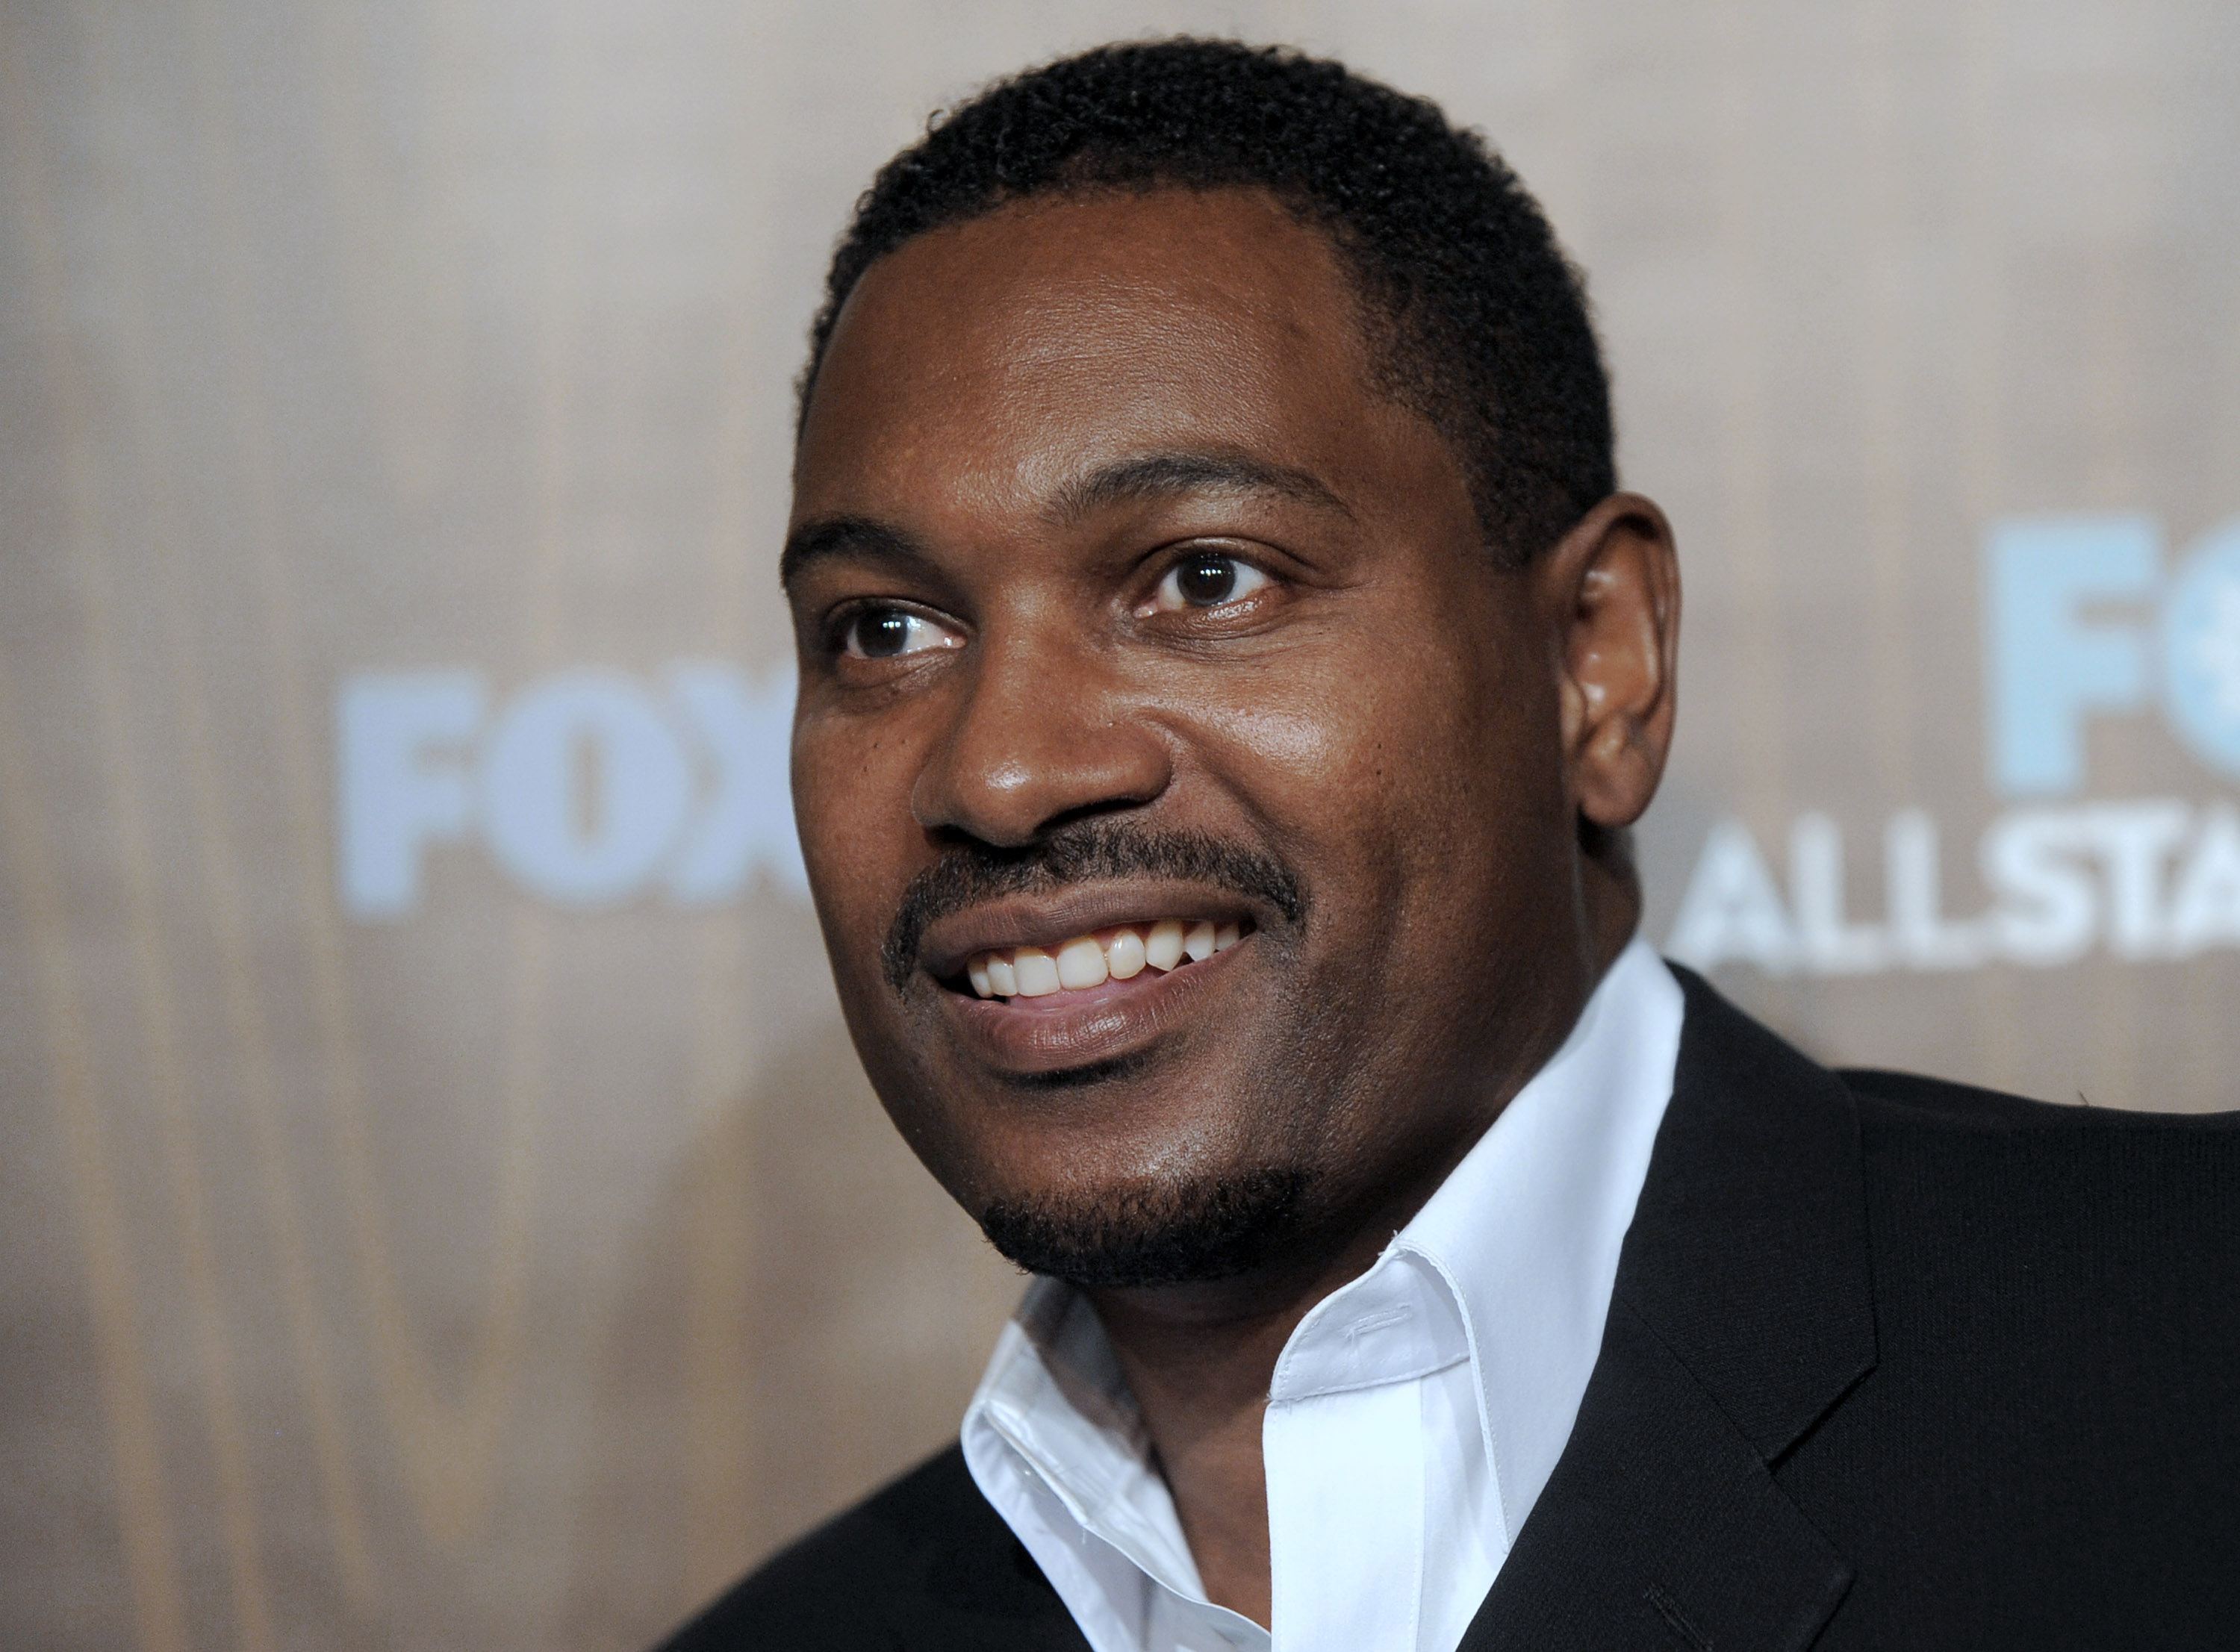 Mykelti Williamson earned a  million dollar salary - leaving the net worth at 4 million in 2018